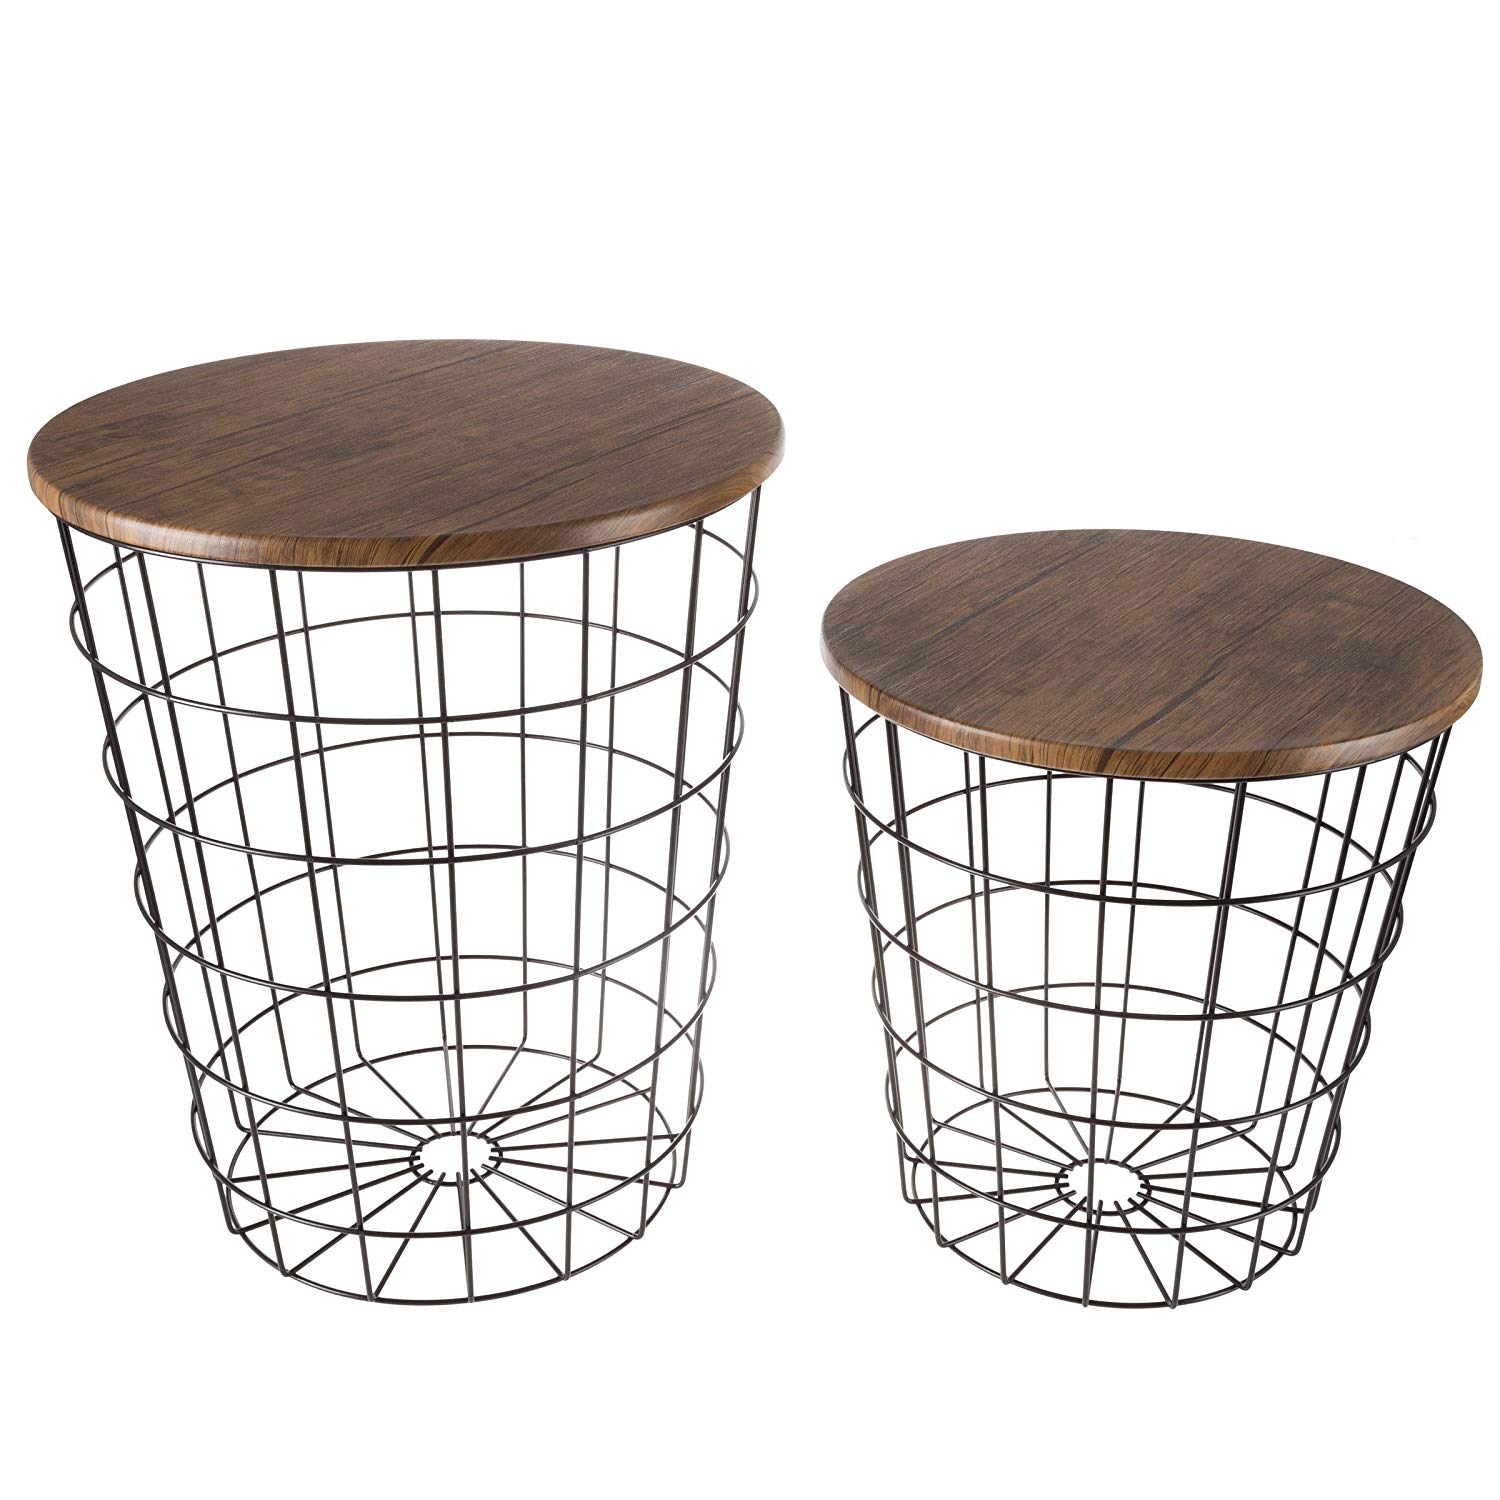 lavish home endtbl set nesting end storage accent side table with drawer convertible round metal basket wood veneer top tables black kitchen elephant sculpture outdoor wicker